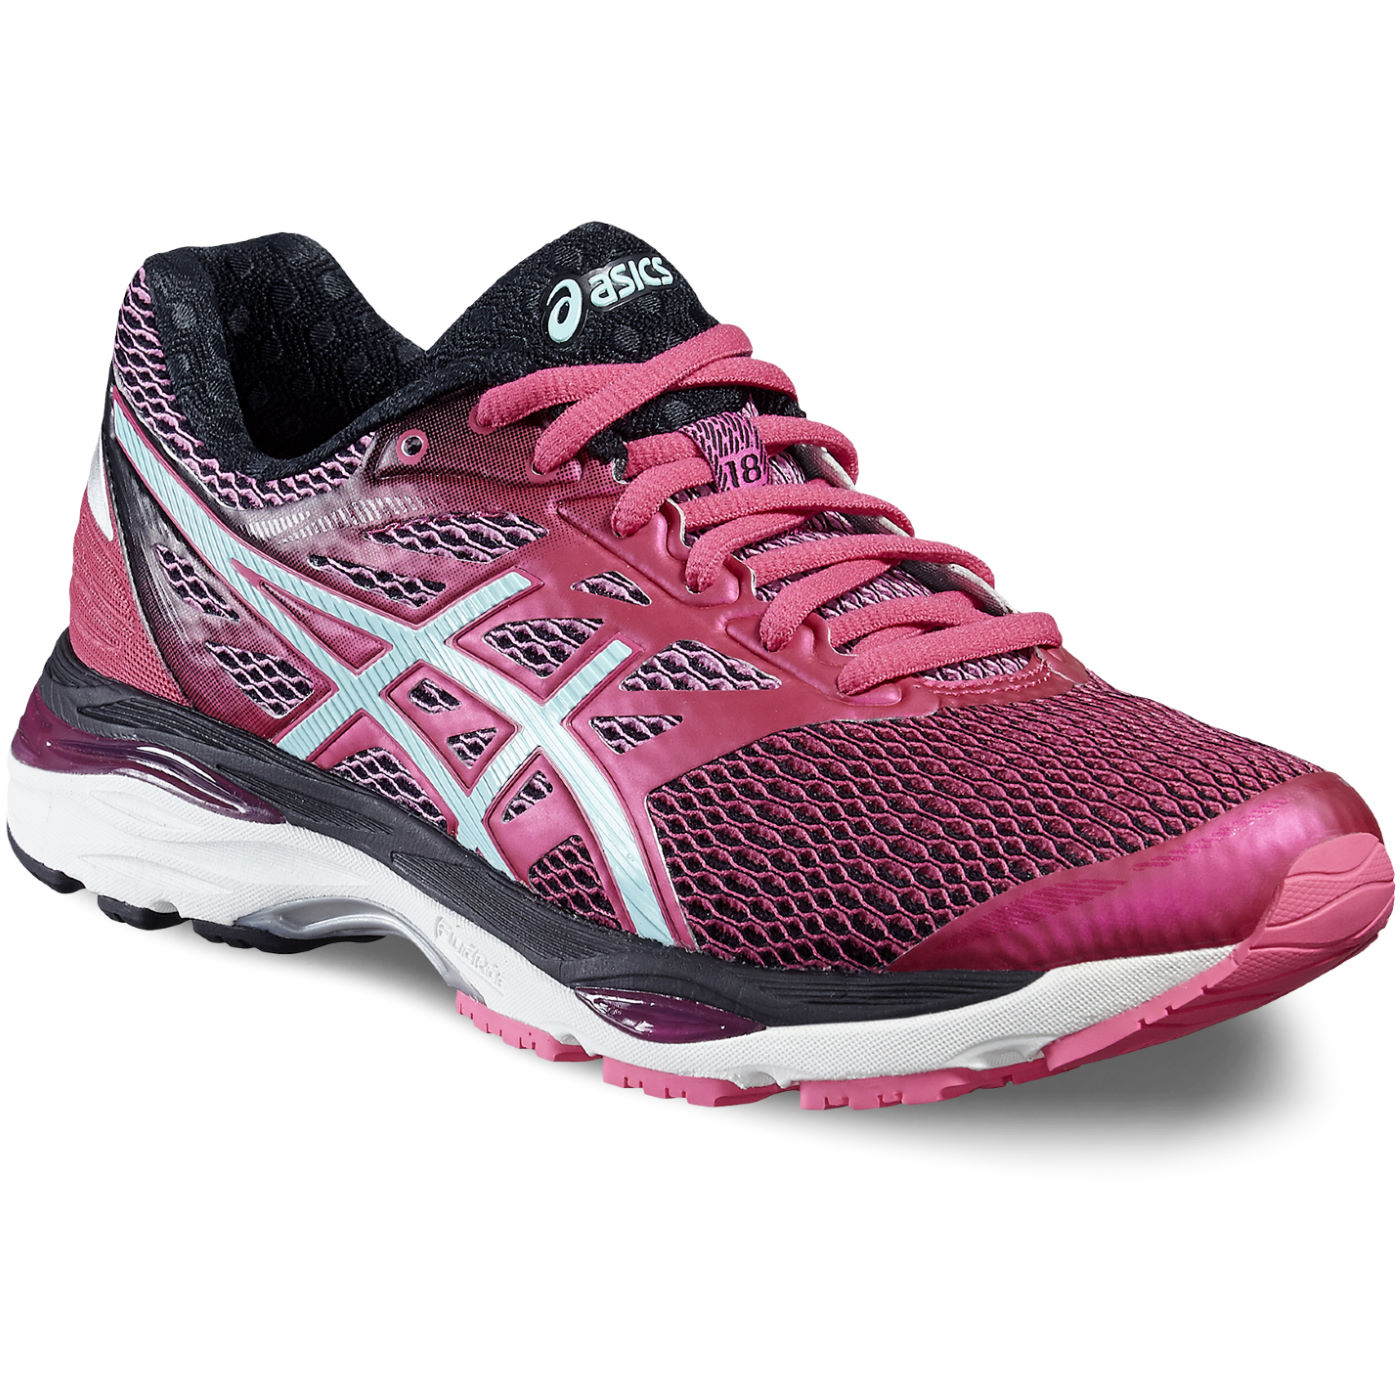 chaussures de running amorties asics women 39 s gel cumulus 18 shoes aw16 wiggle france. Black Bedroom Furniture Sets. Home Design Ideas